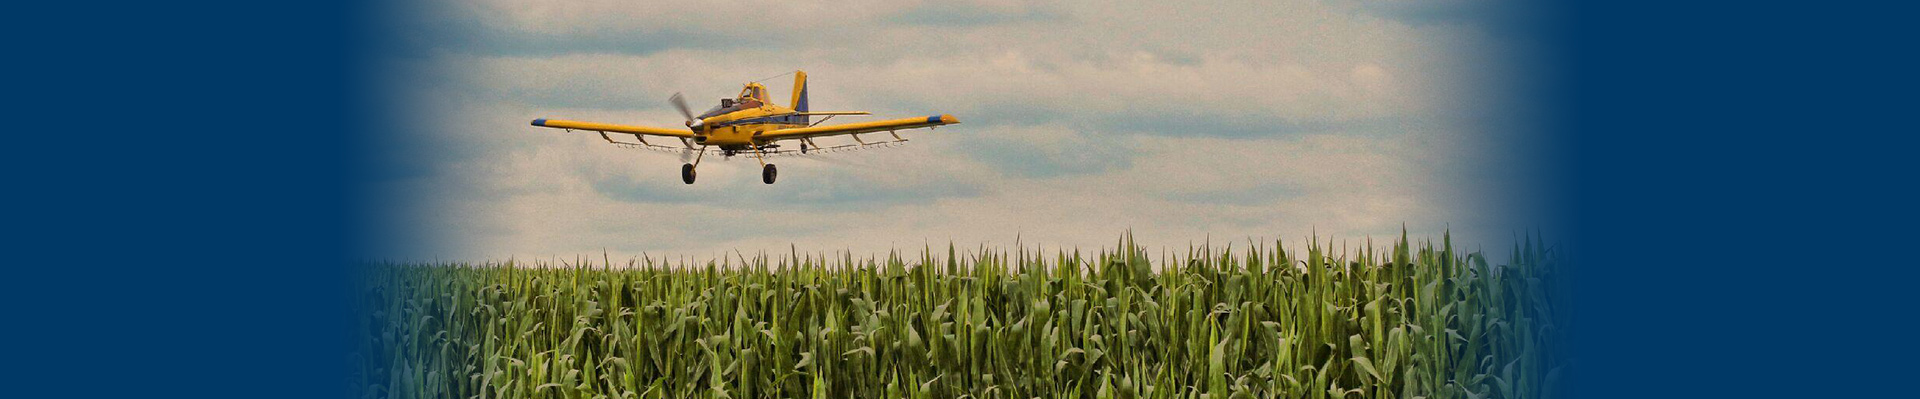 A airplane going over a corn field